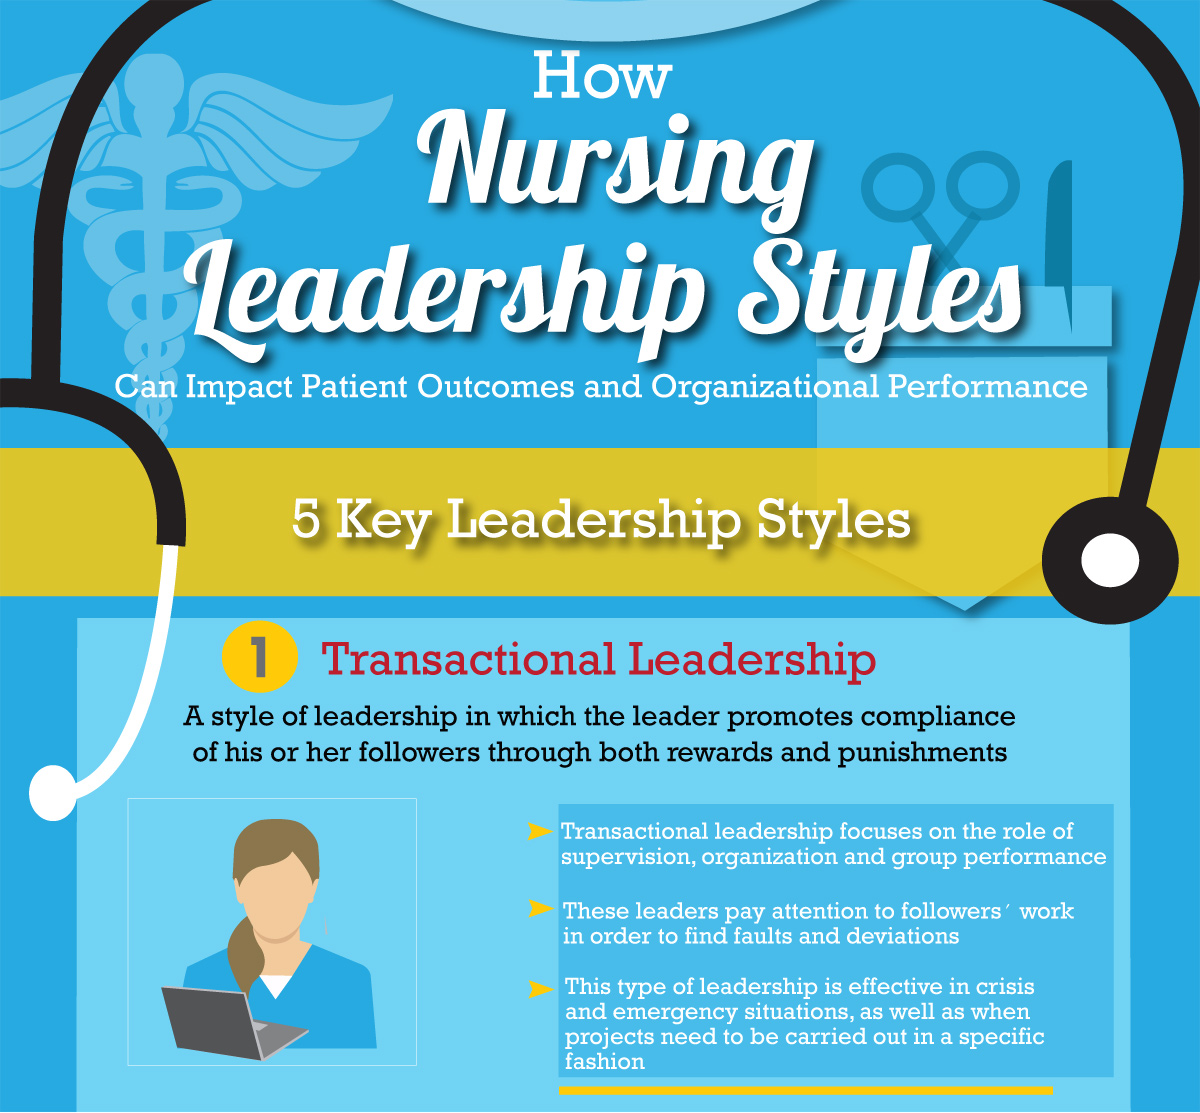 How Nursing Leadership Styles Can Impact Patient Outcomes And Organizational Performance